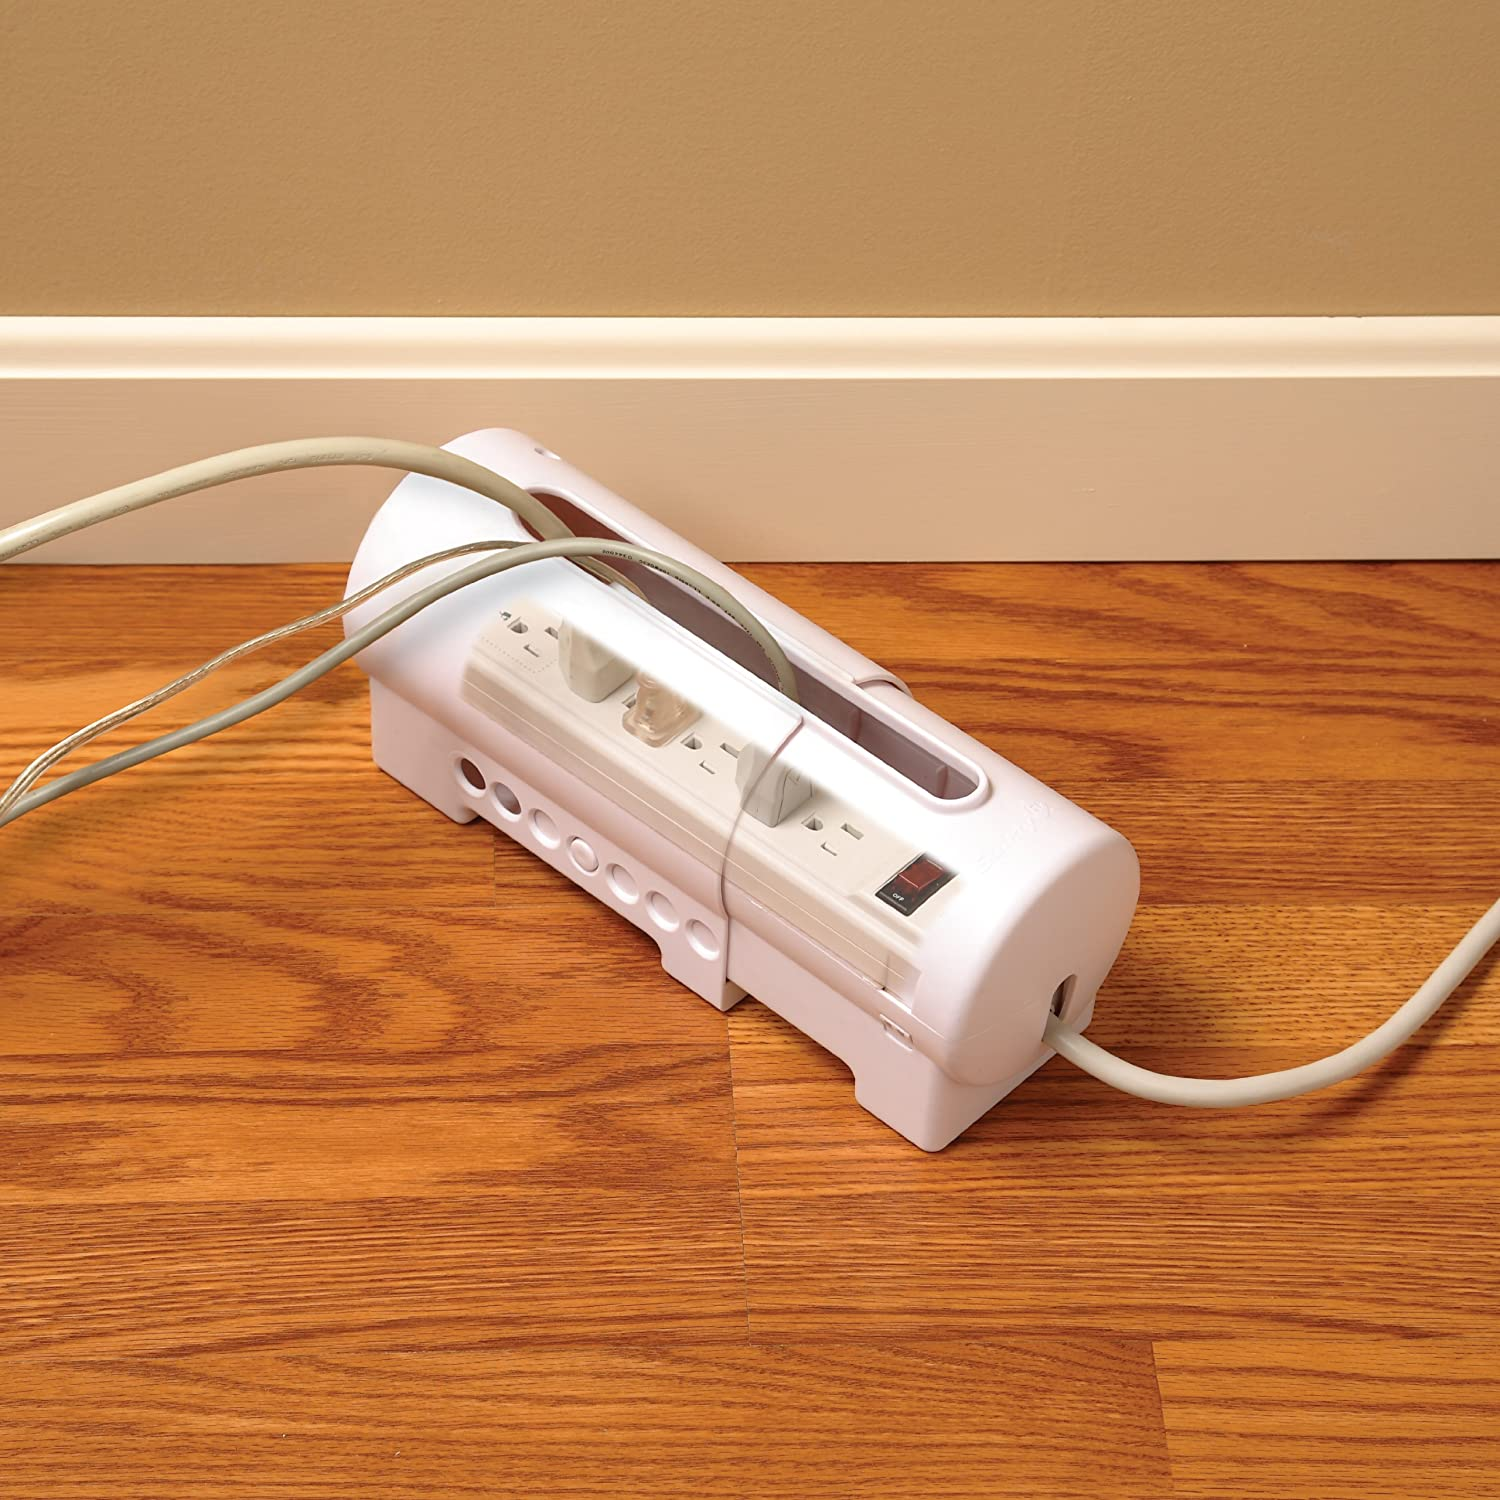 Power Cord Safety : New child baby proof universal safety st electric power